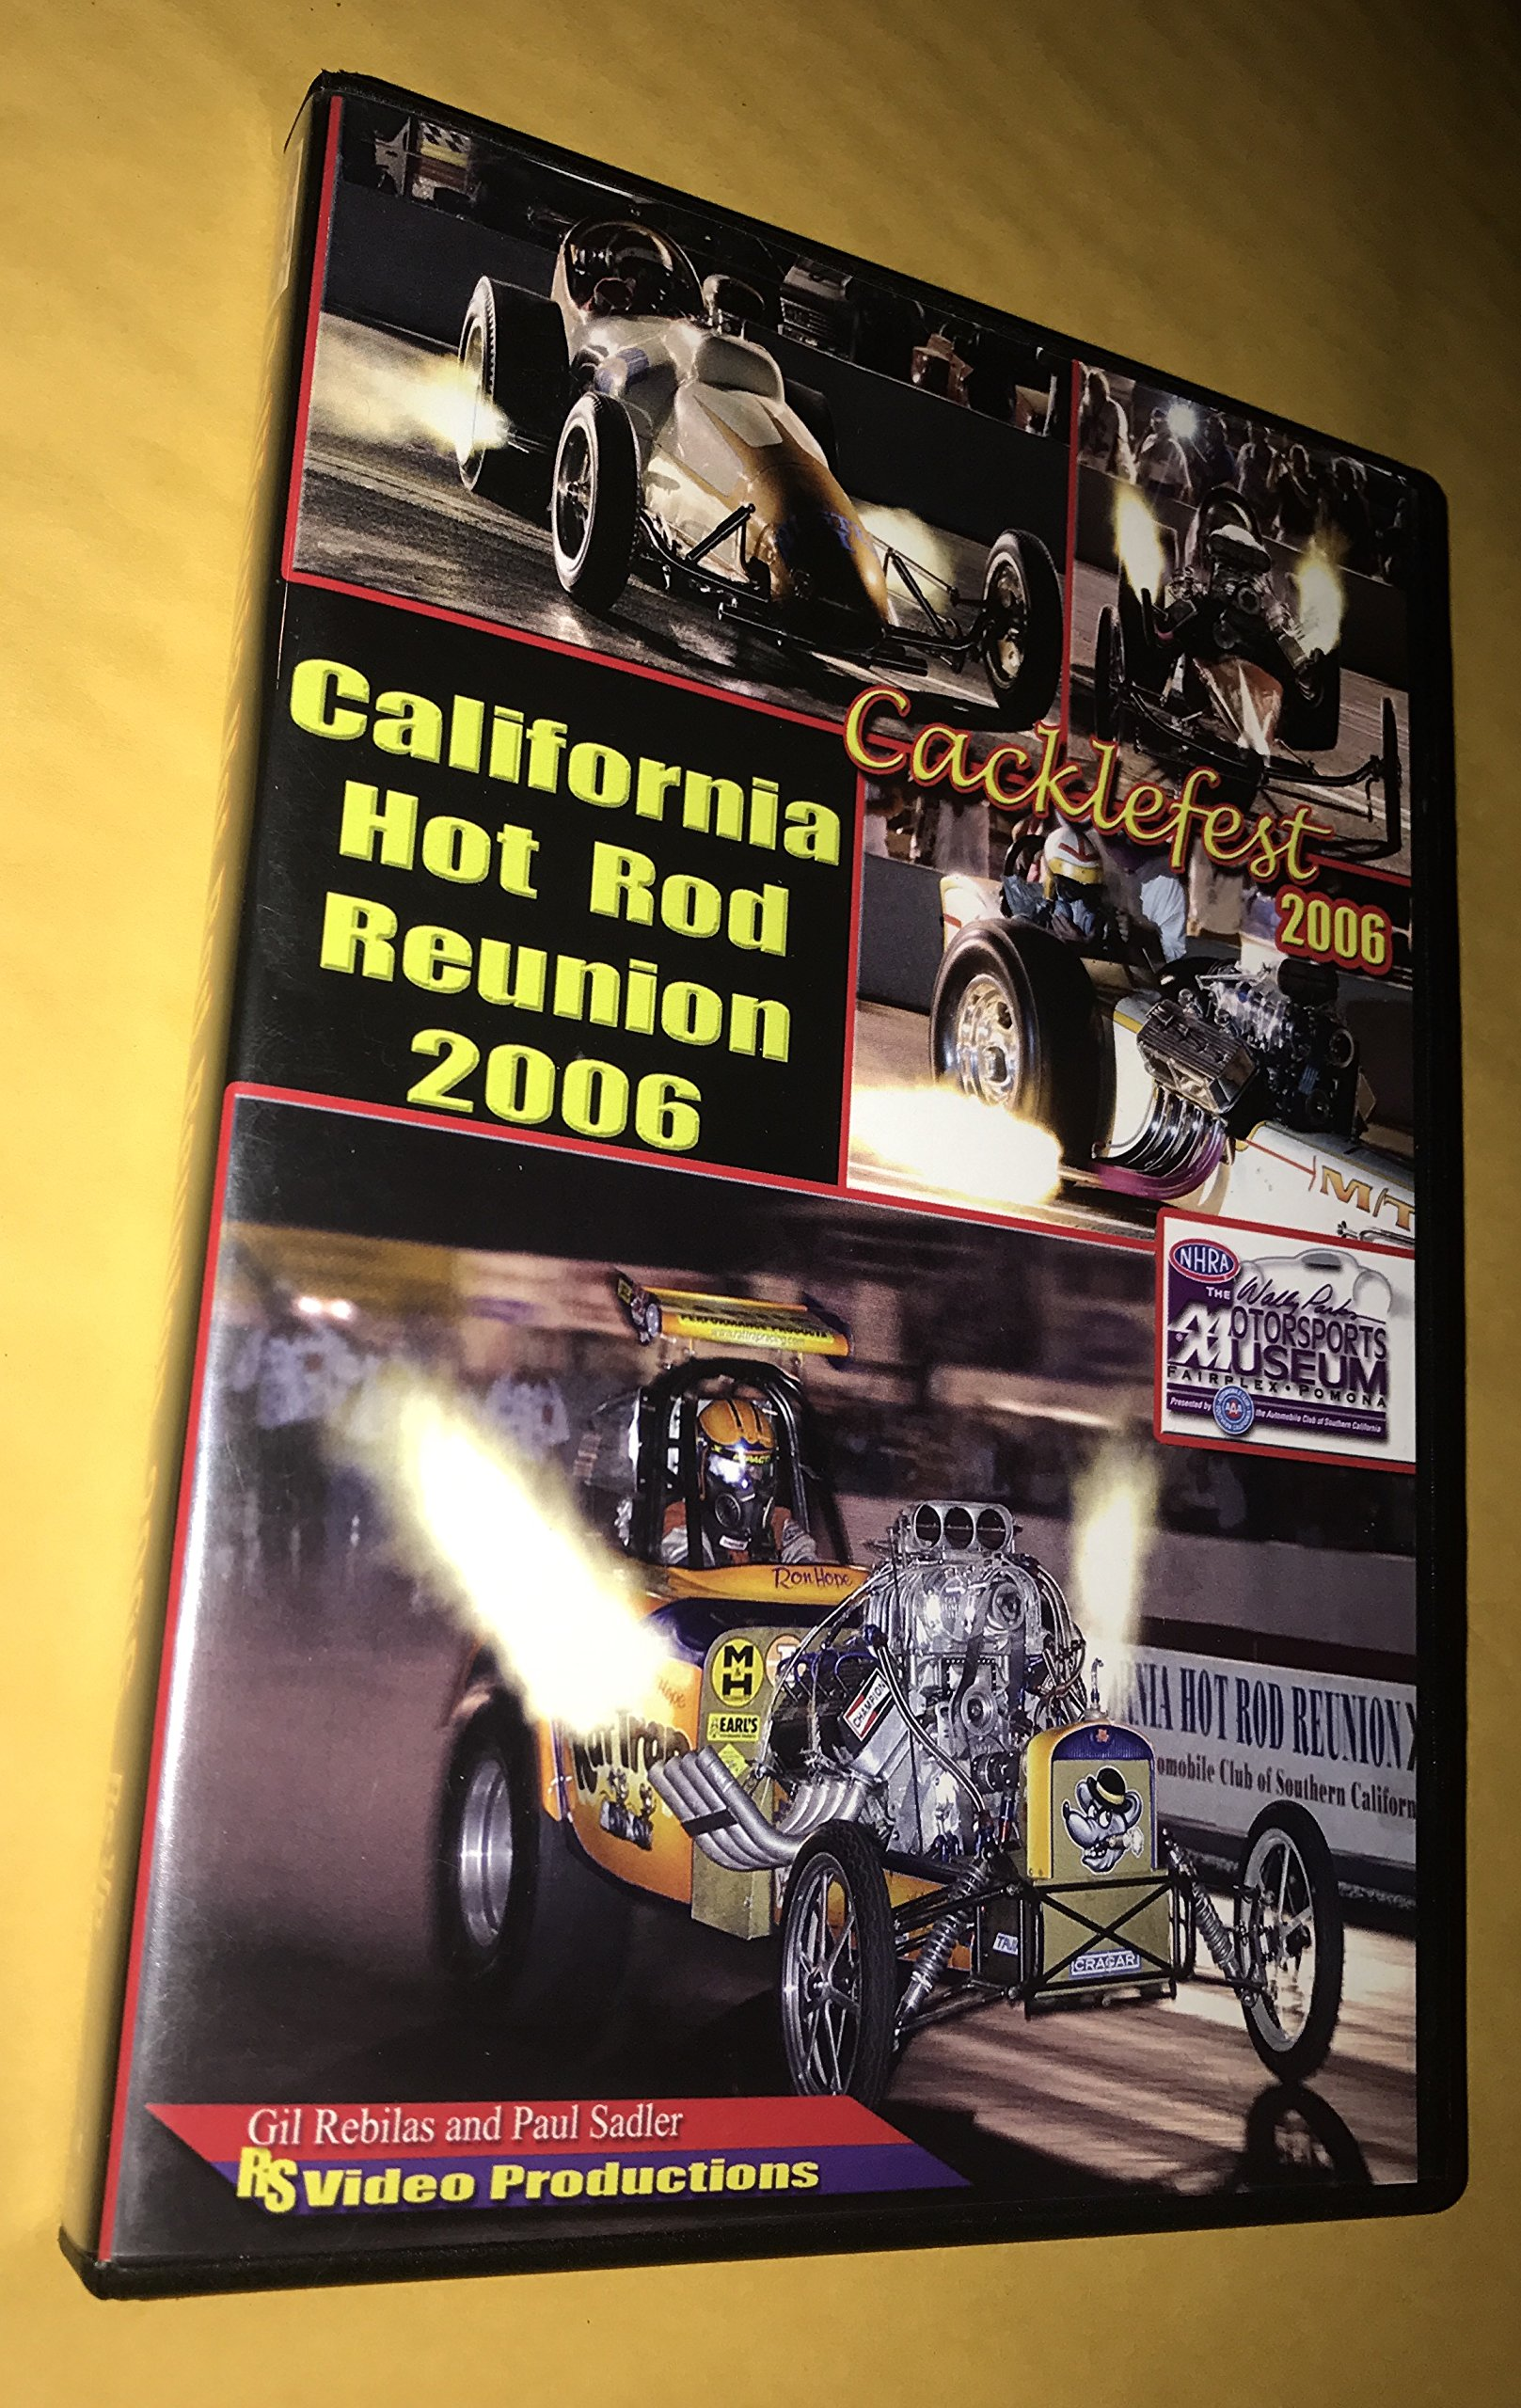 The 15th Annual California Hot Rod Reunion 2006